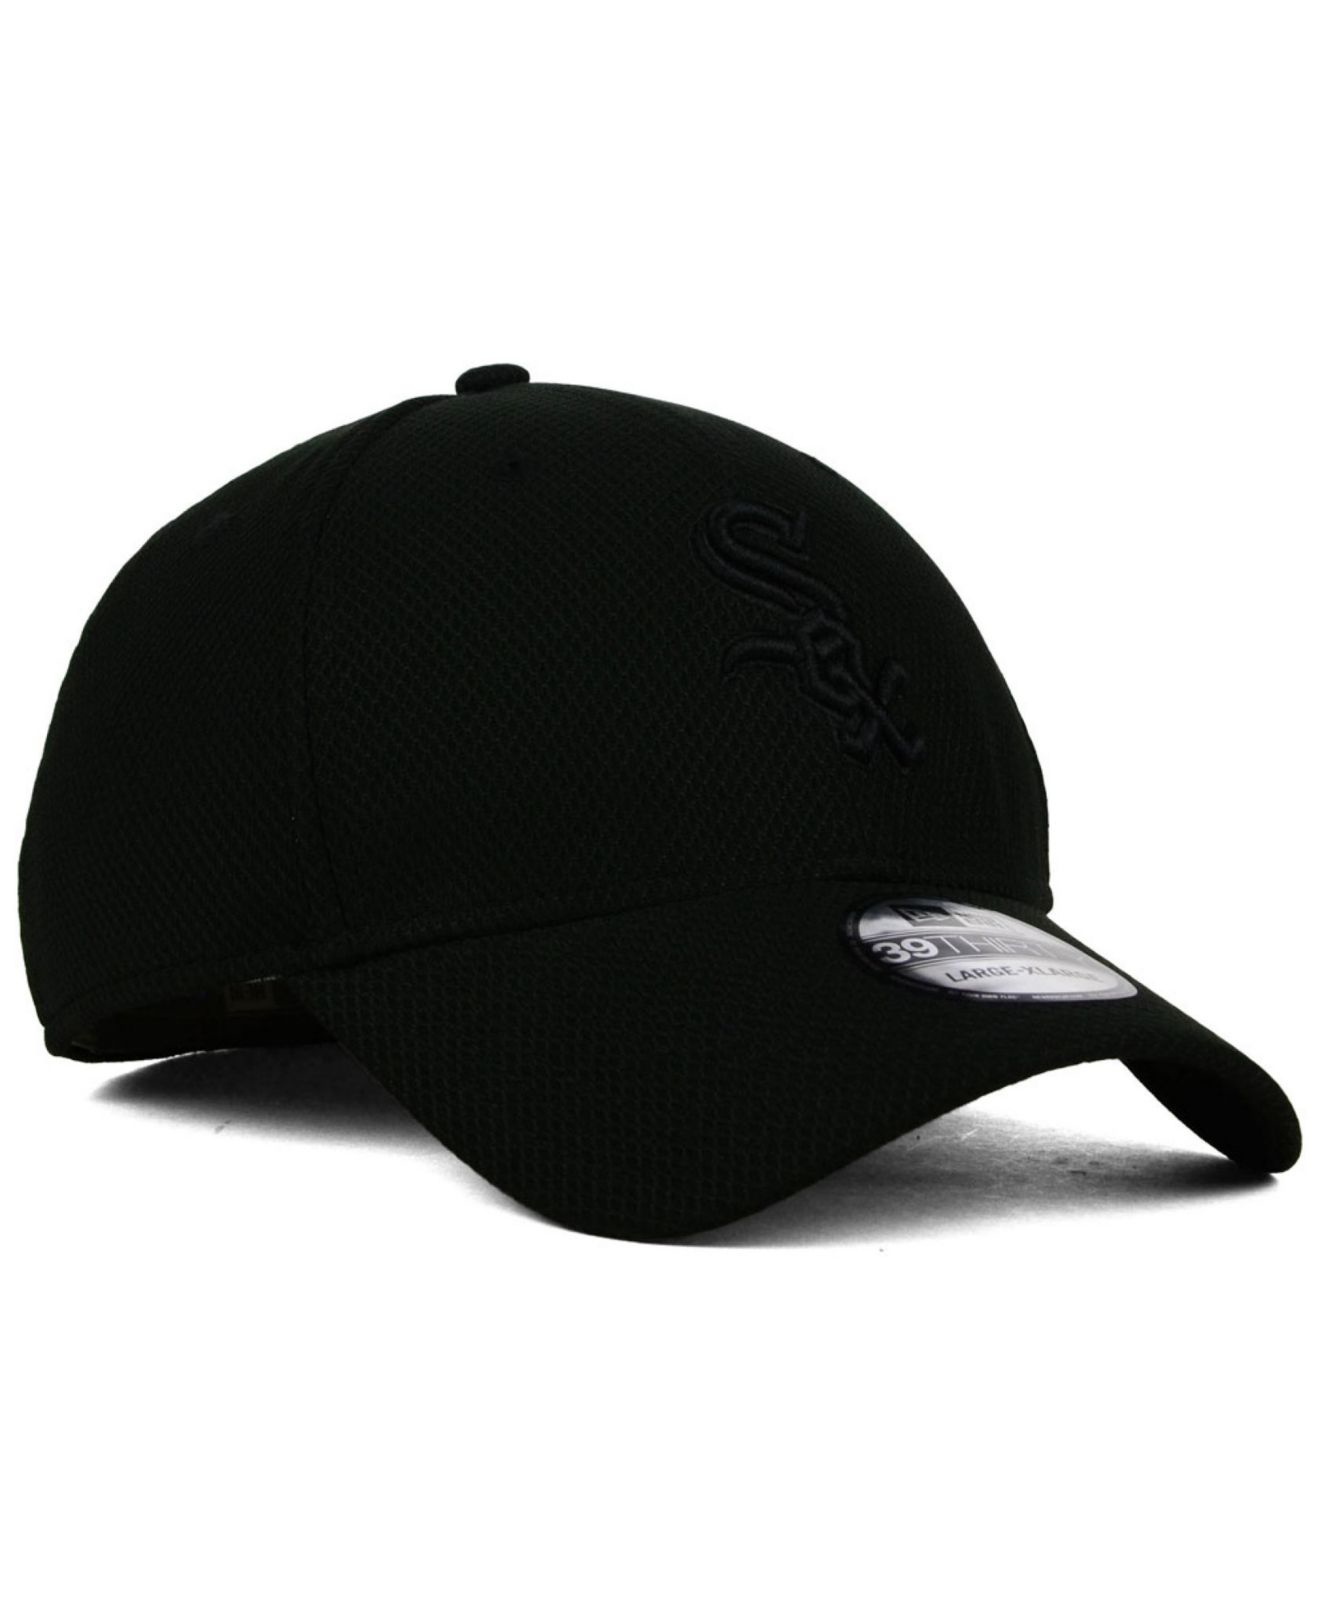 Lyst - KTZ Chicago White Sox Black Diamond Era 39thirty Cap in Black ... d111262f0c9